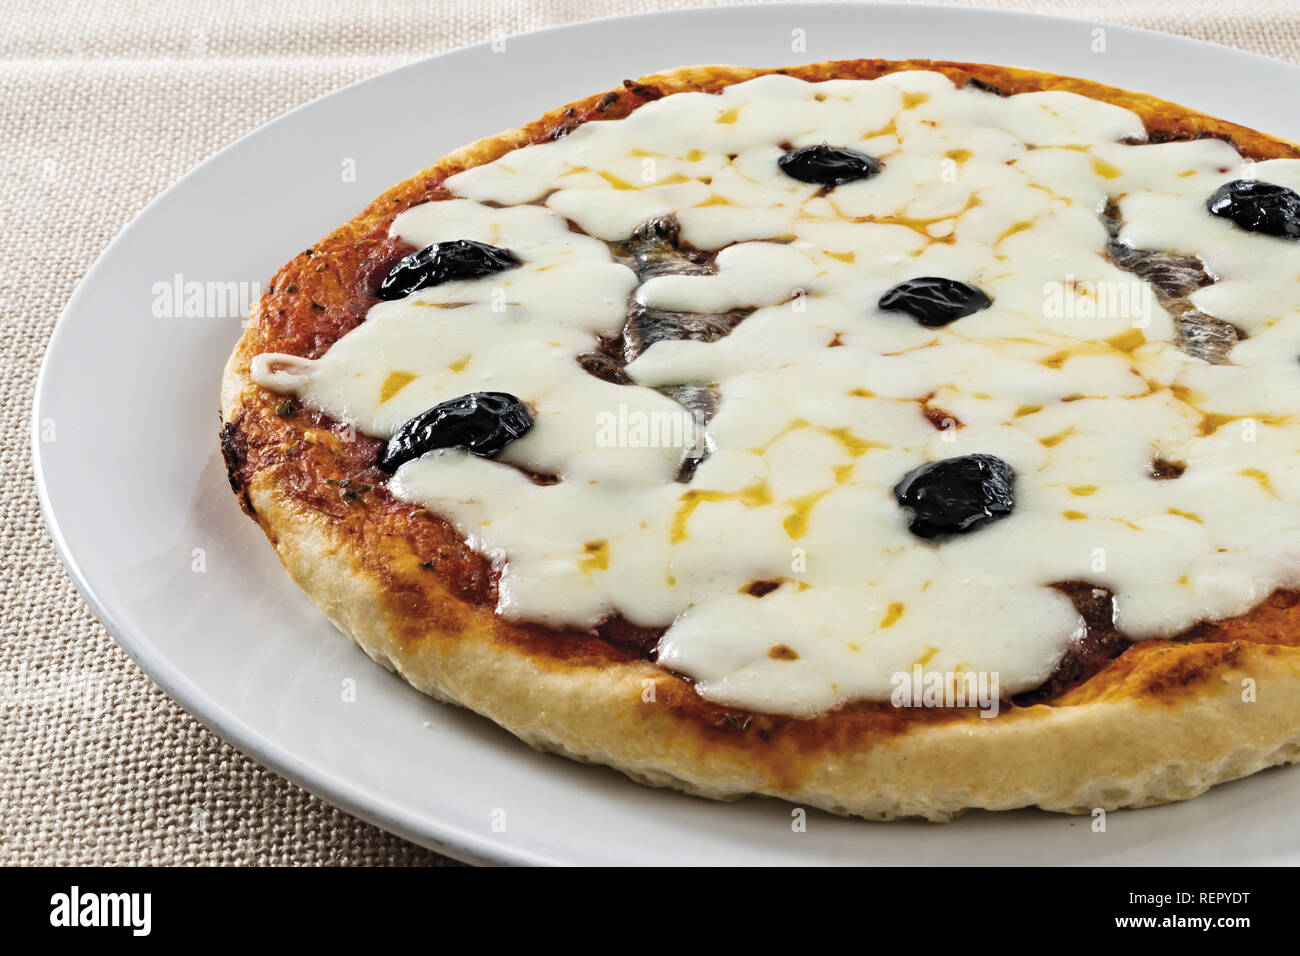 pizza tomato black olives anchovies whole cheese - Stock Image